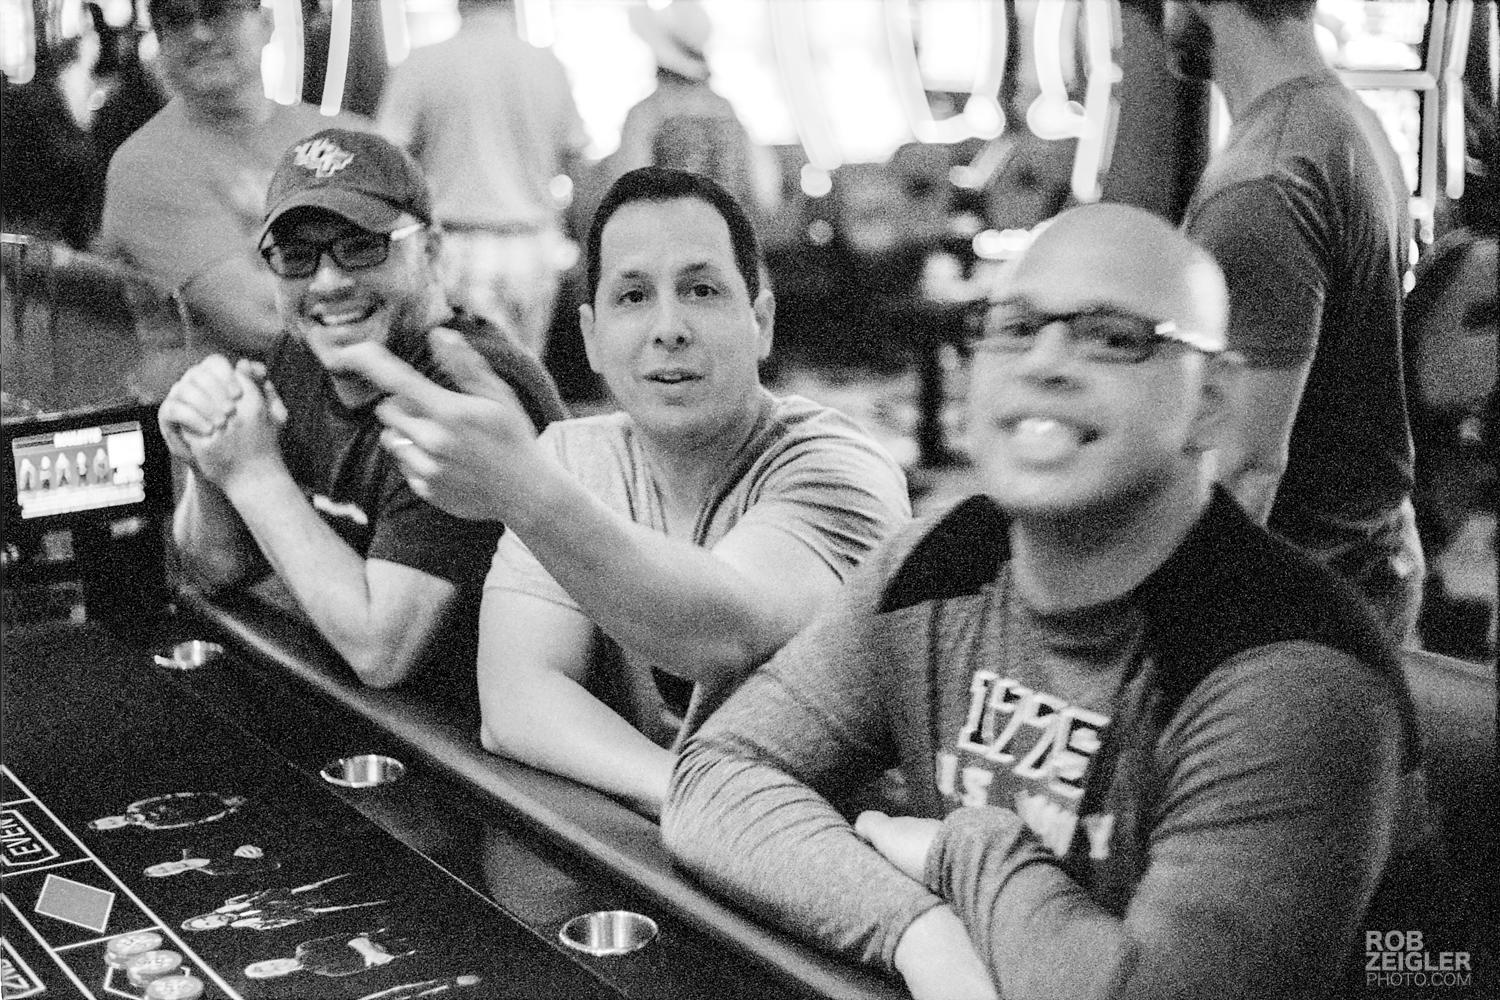 The moment when Ian informed me that the dealer was upset about me taking photos in the casino. My plan was foiled…